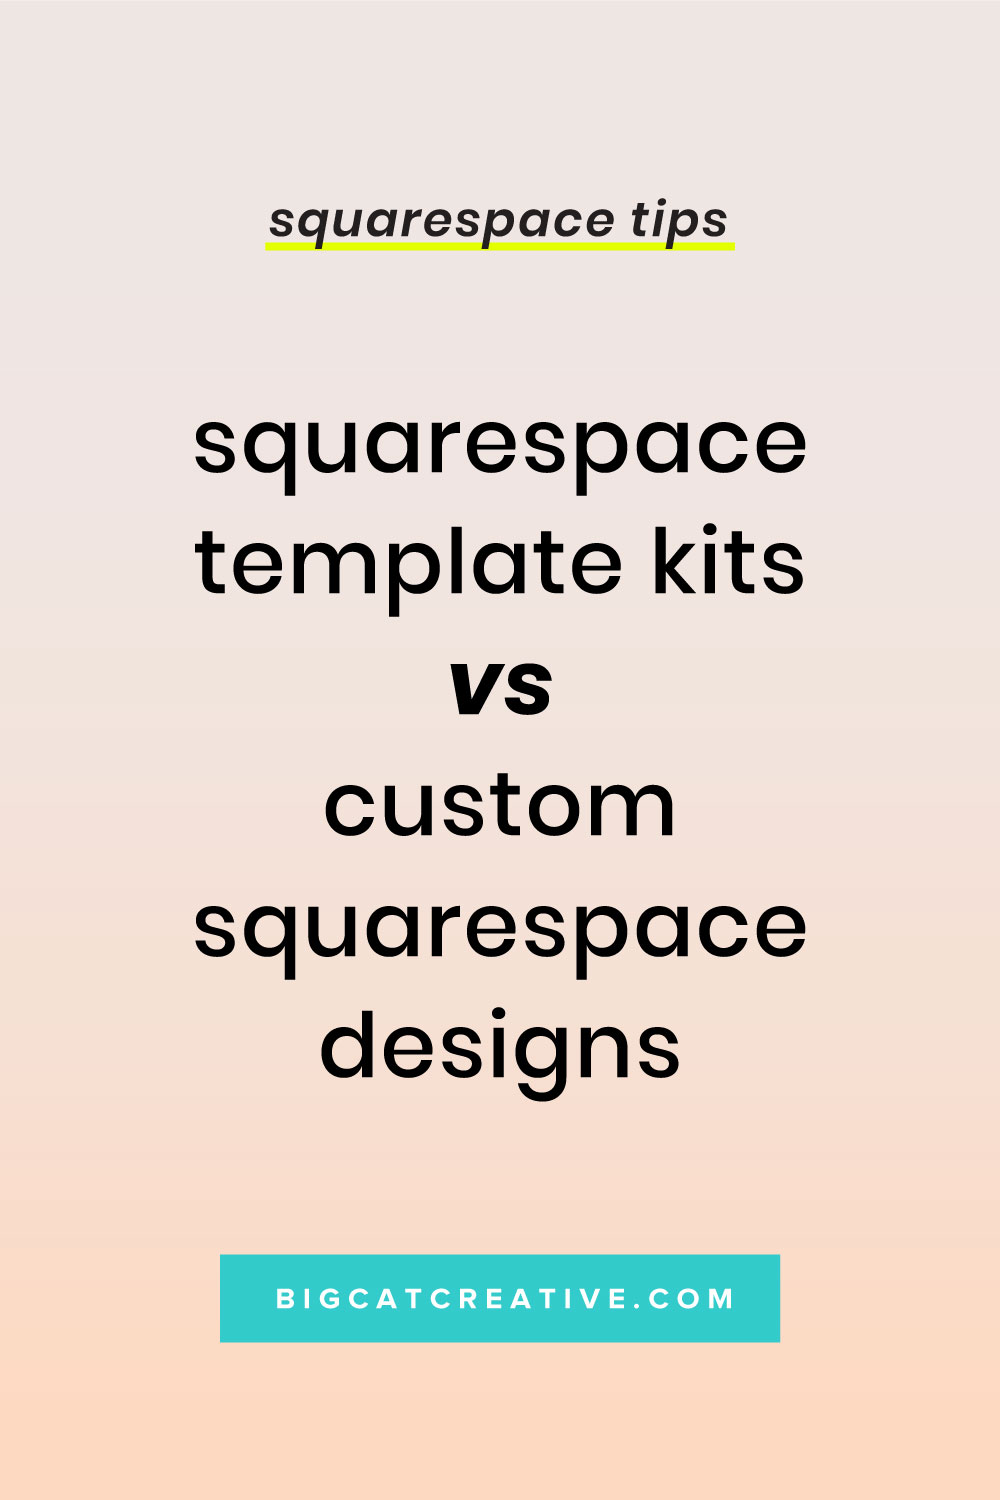 Should I buy a Squarespace Template Kit, or a Custom Squarespace Website Design? Learn the pros and cons of both, and which you should go with!